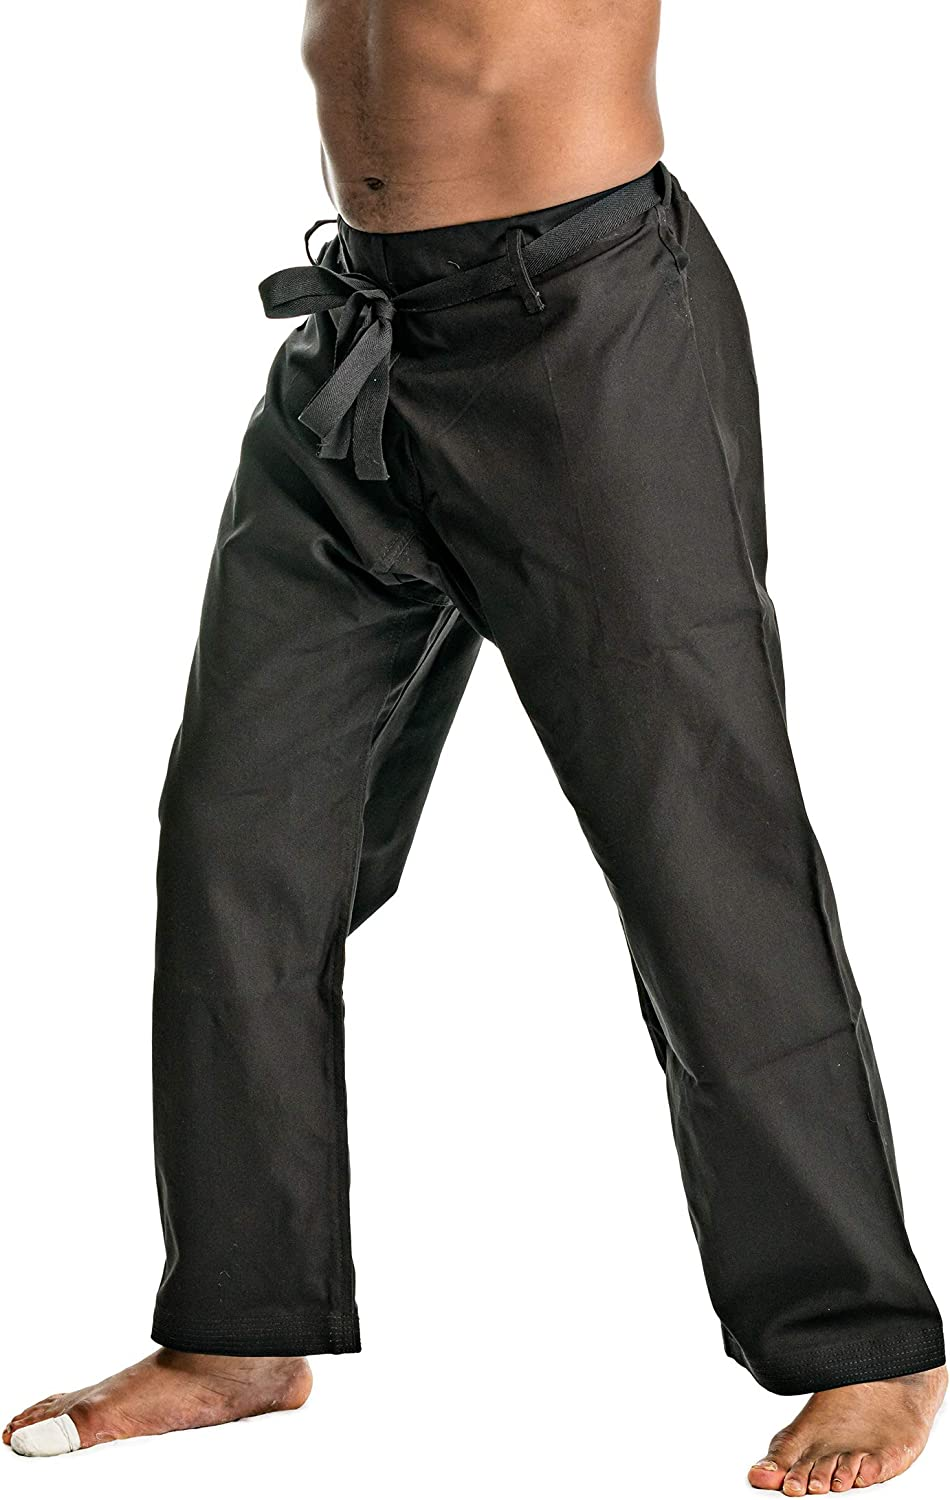 Ronin Brand Heavyweight Karate Pants Waist with Traditional Drawstring Black or White 100/% Cotton 12oz Weight